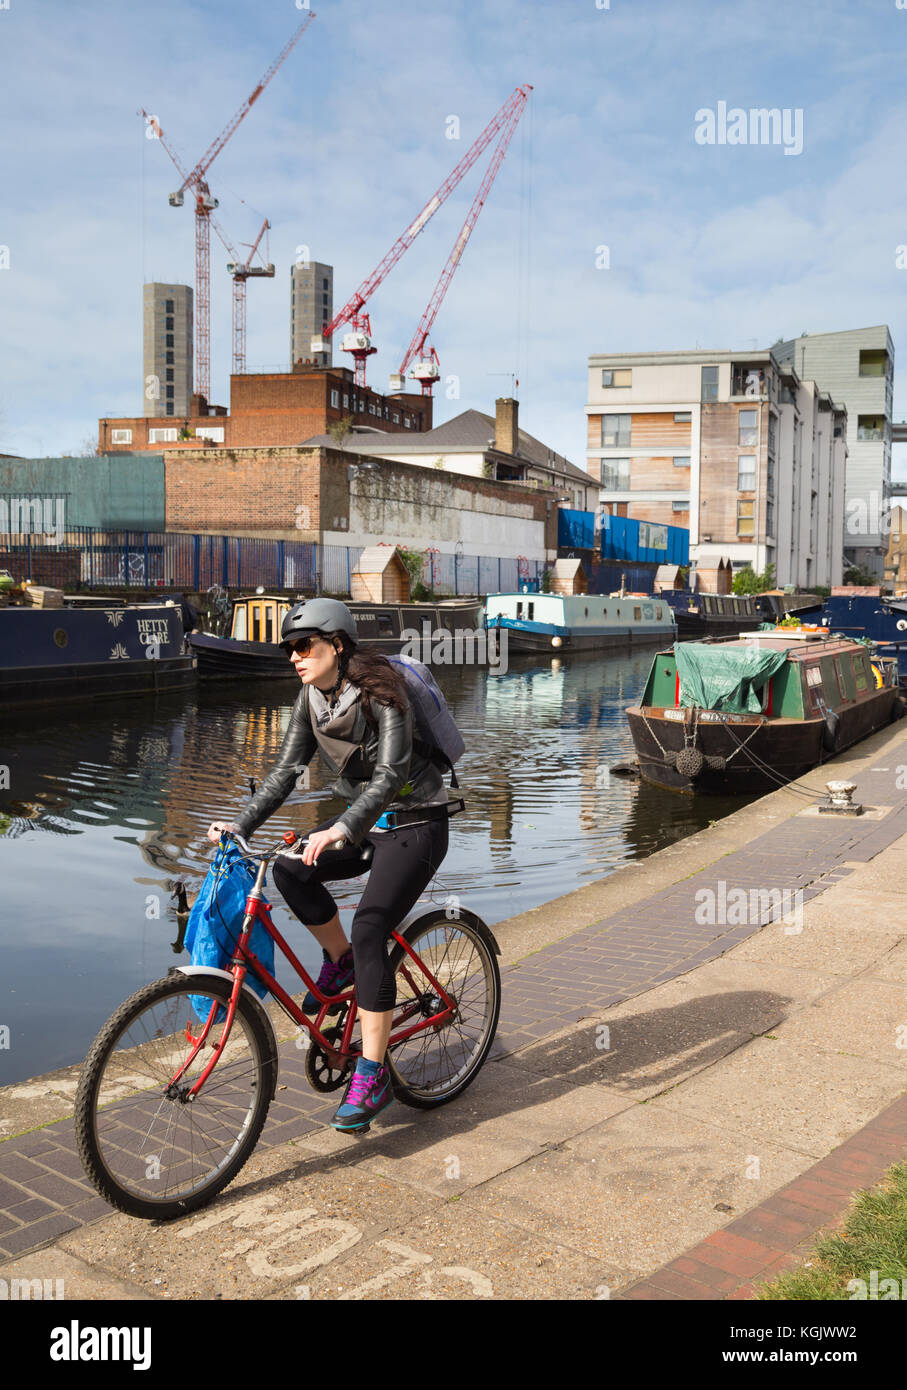 Young woman in a leather jacket cycles along towpath by Regent's Canal in east London, with construction cranes - Stock Image